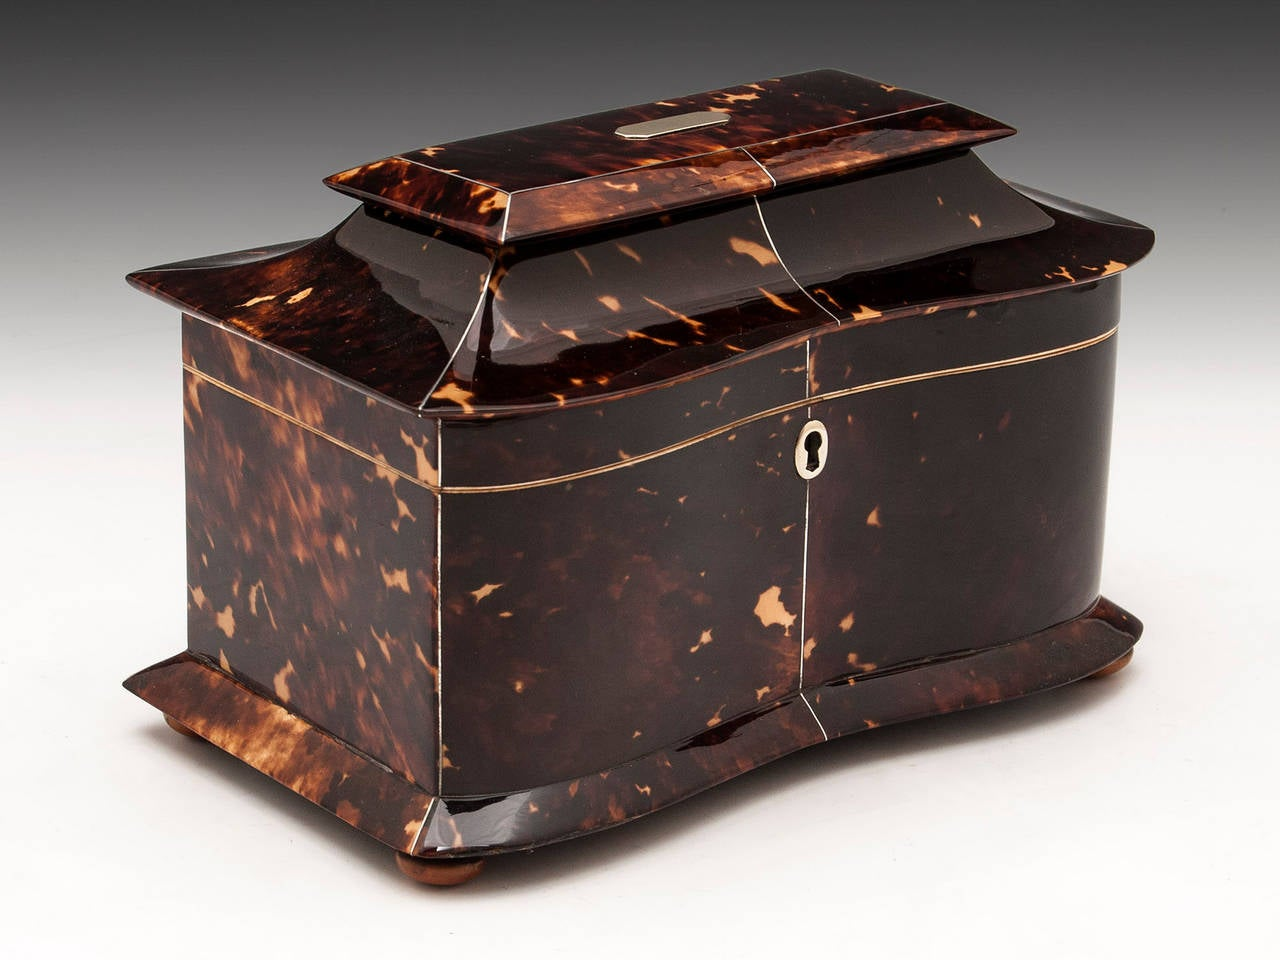 19th Century Regency Tortoiseshell Tea Caddy For Sale